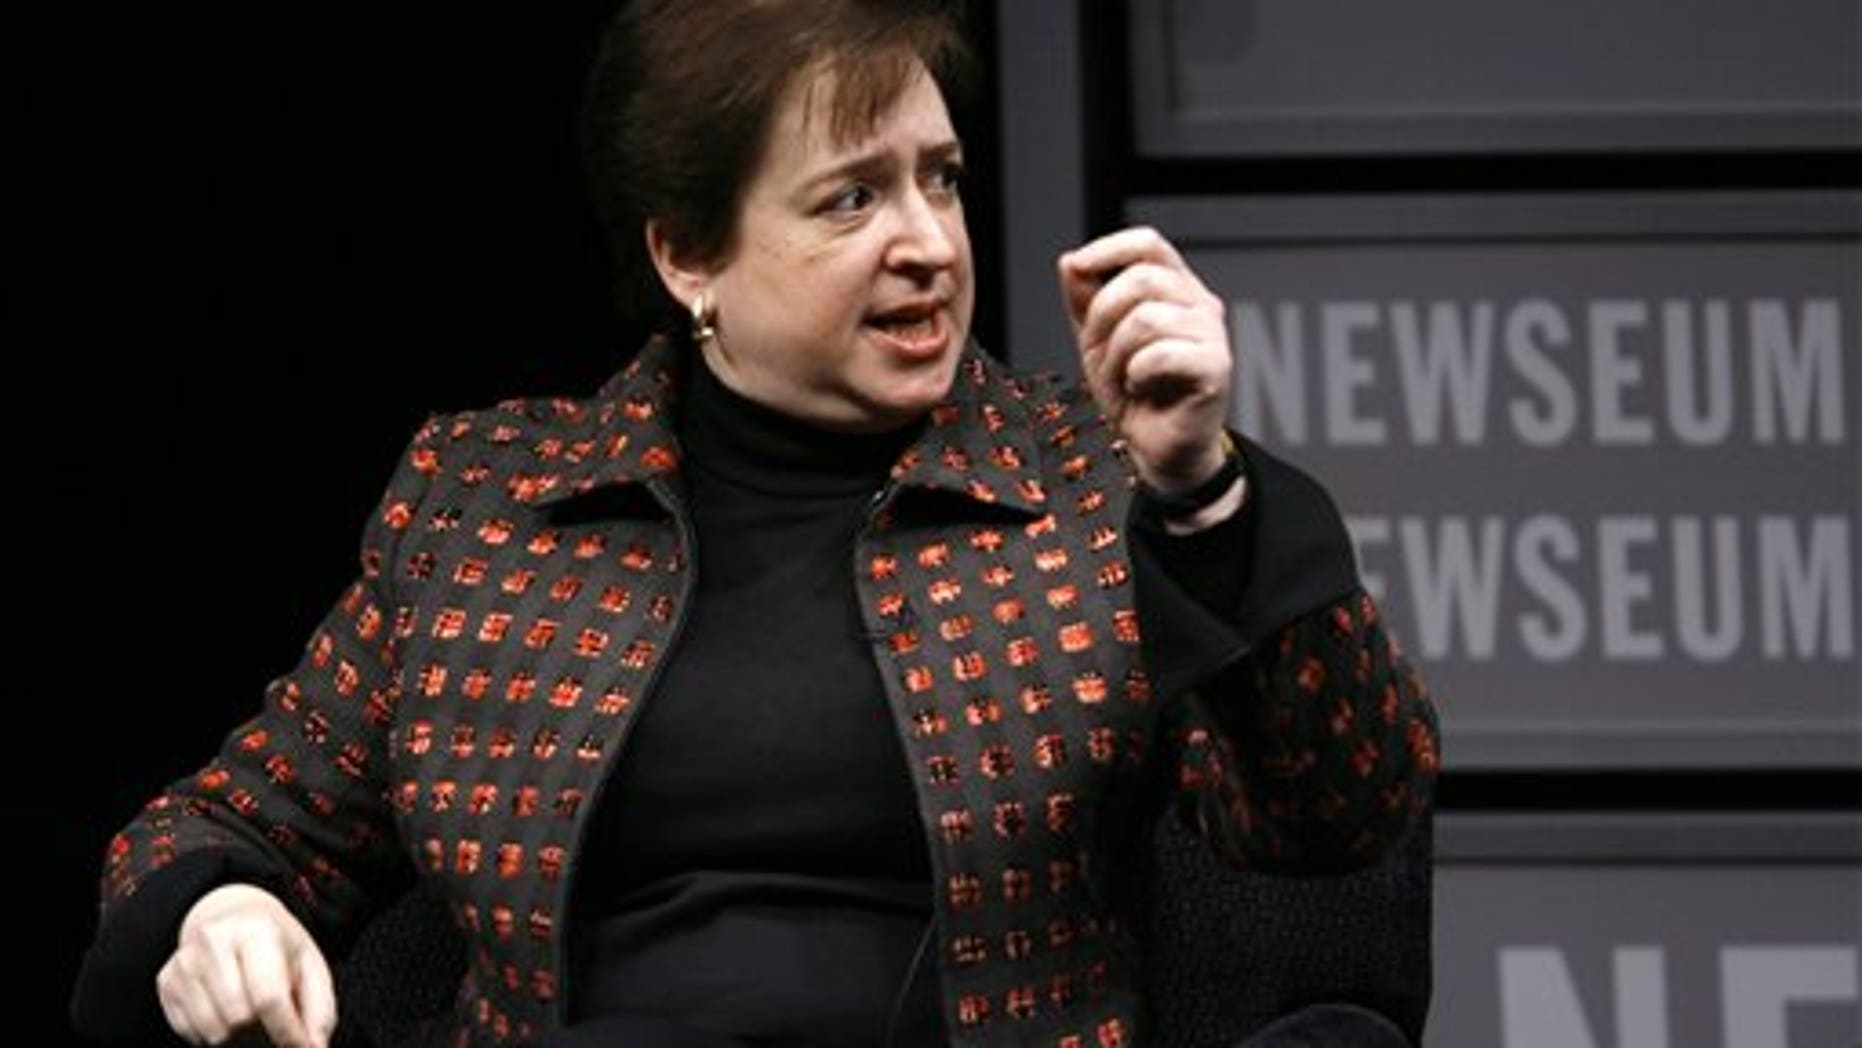 Jan. 28: U.S. Solicitor General Elena Kagan speaks during a panel about Women Advocates of the Supreme Court Bar at the Newseum in Washington.